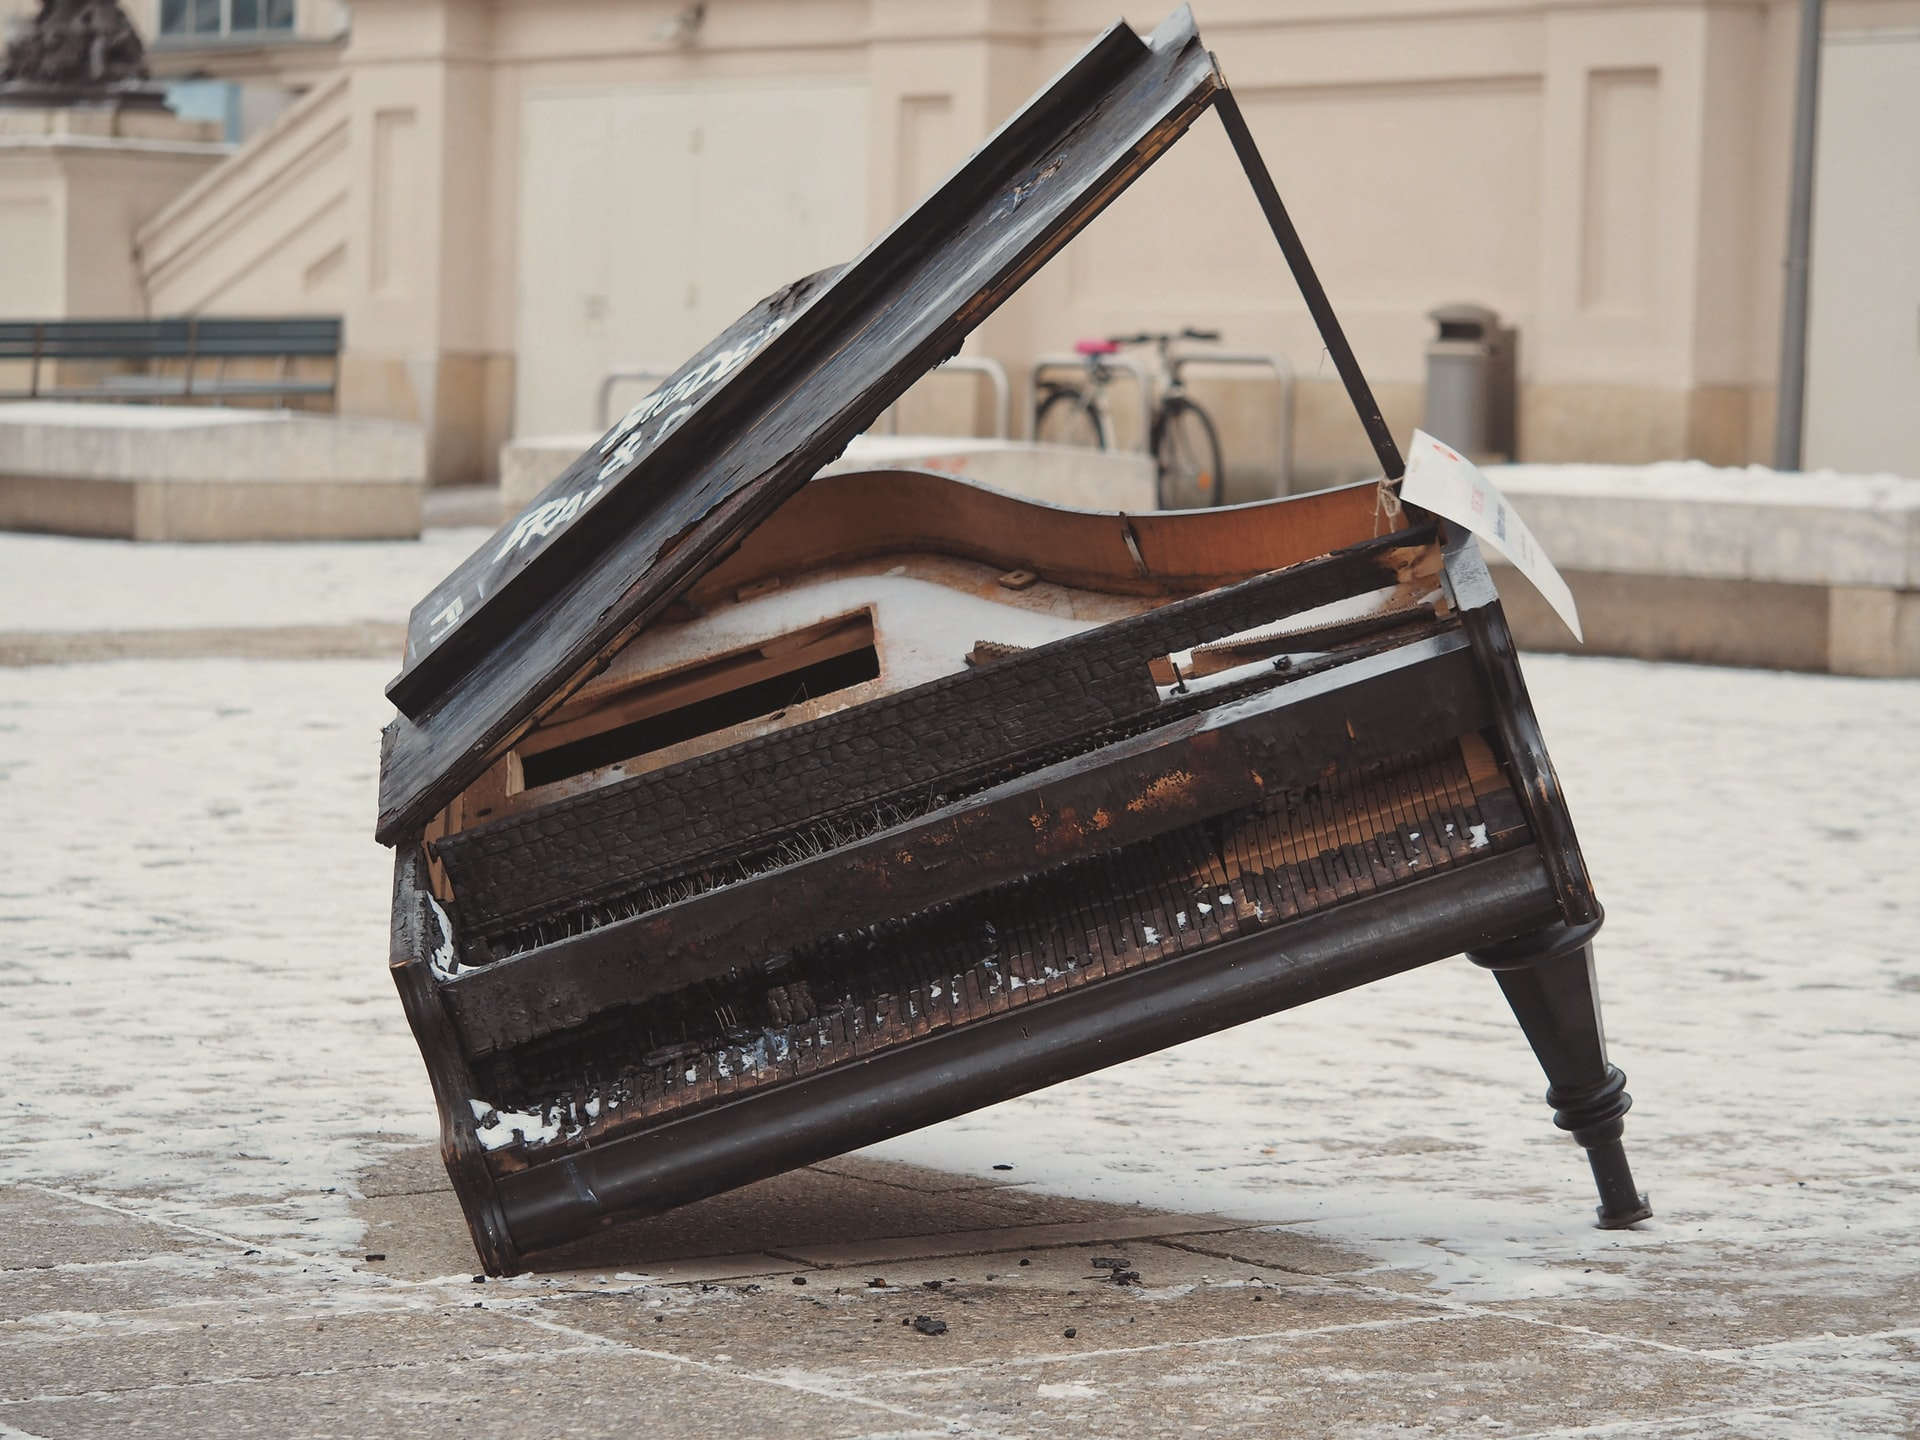 A very old broken, burnt grand piano with graffiti and a broken leg, laying on an angle.